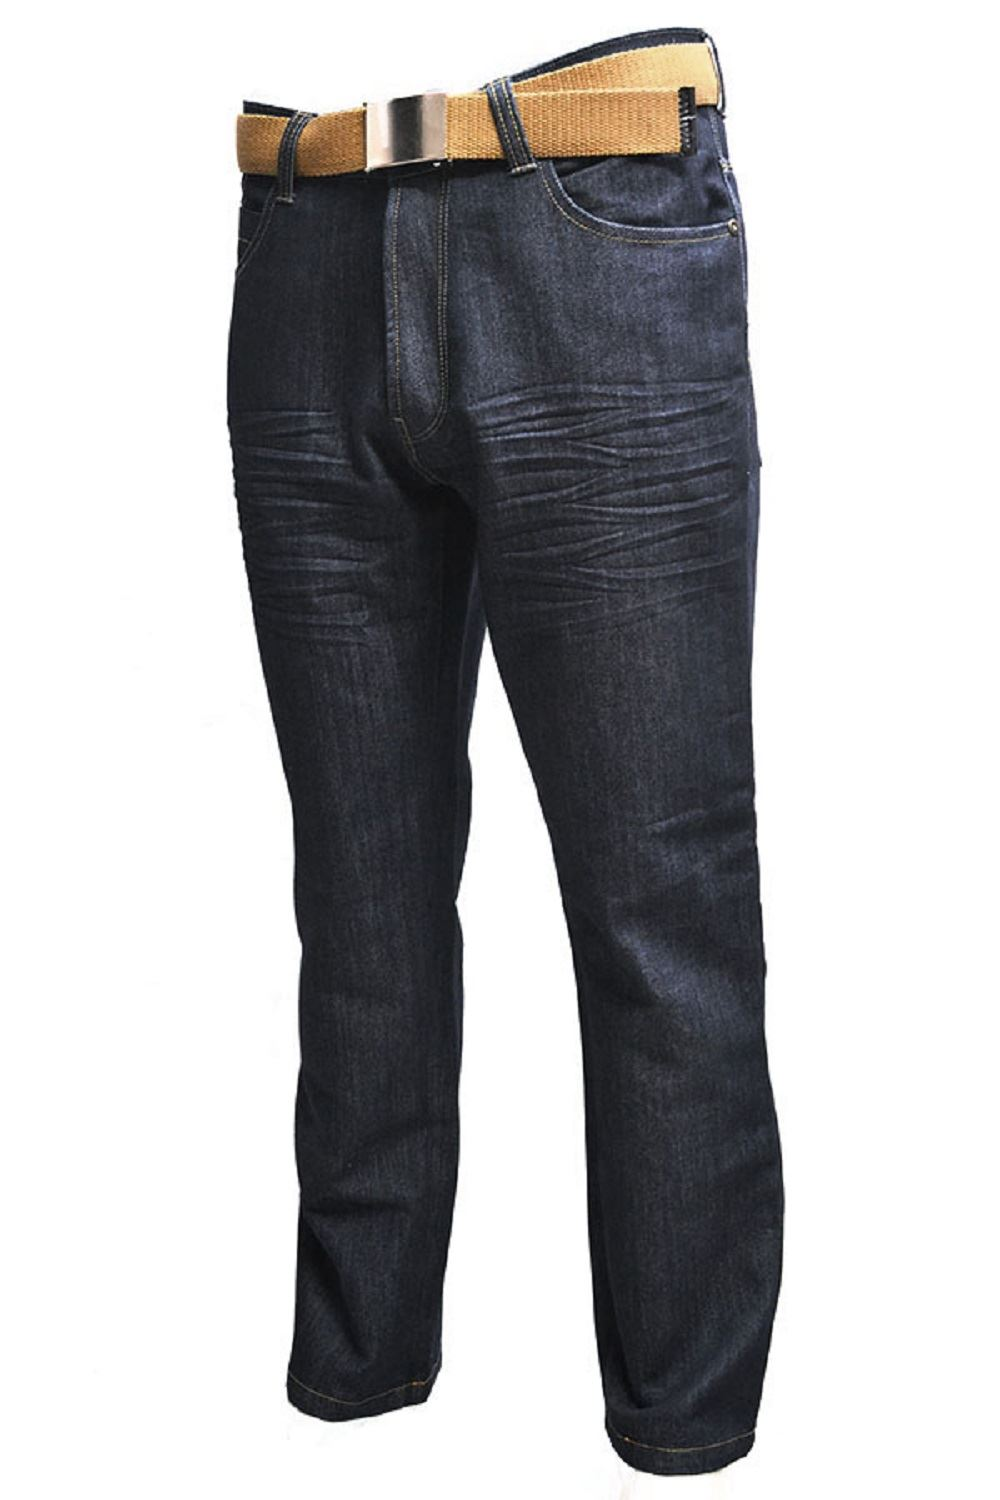 Mens-Classic-Fit-Black-Indigo-Jeans-Kori-By-Creon-Previs thumbnail 14